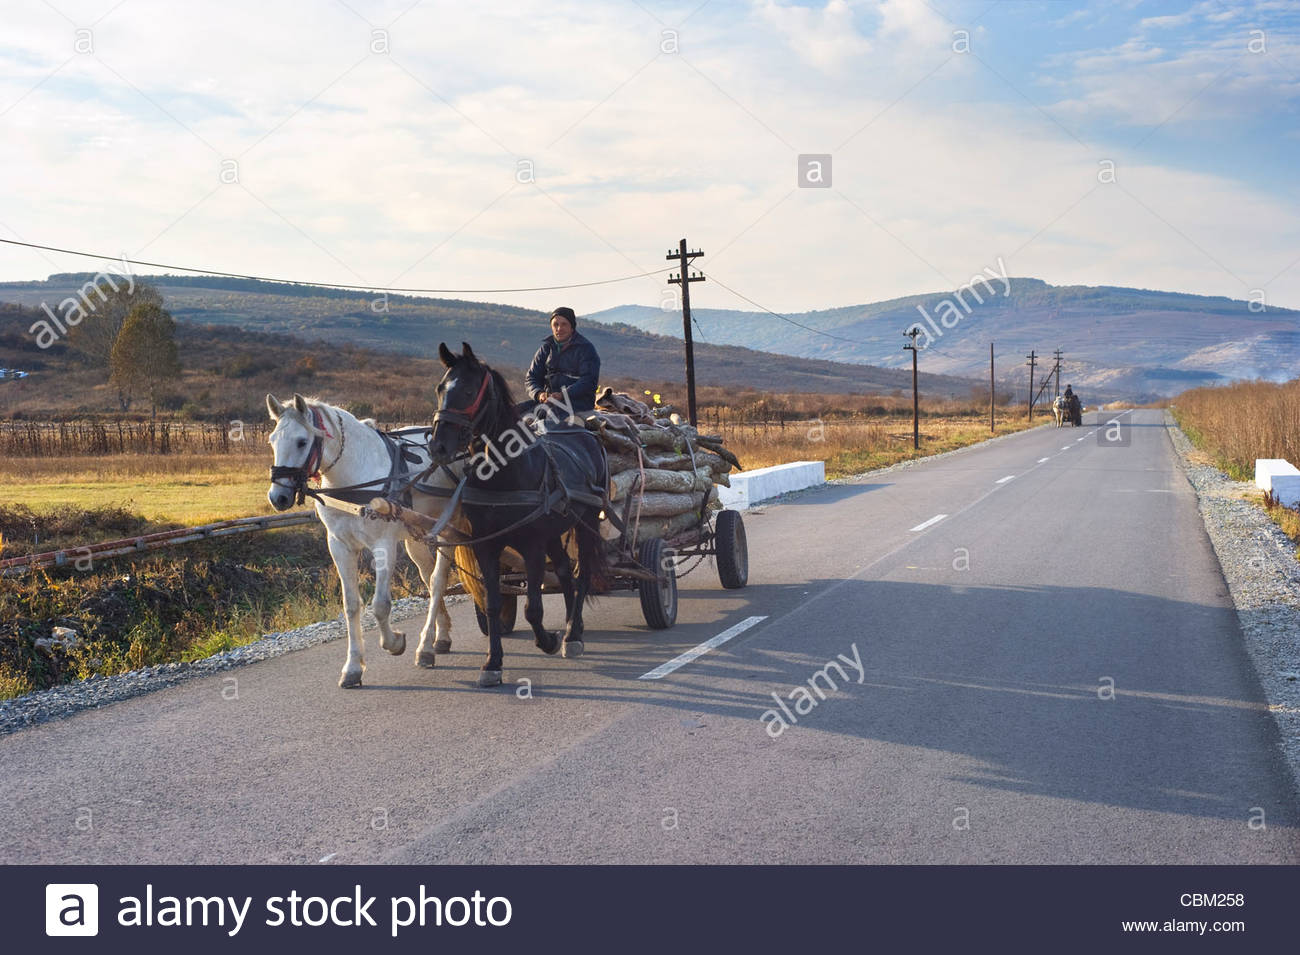 man-driving-horse-cart-by-the-country-road-horse-cart-on-romanian-CBM258